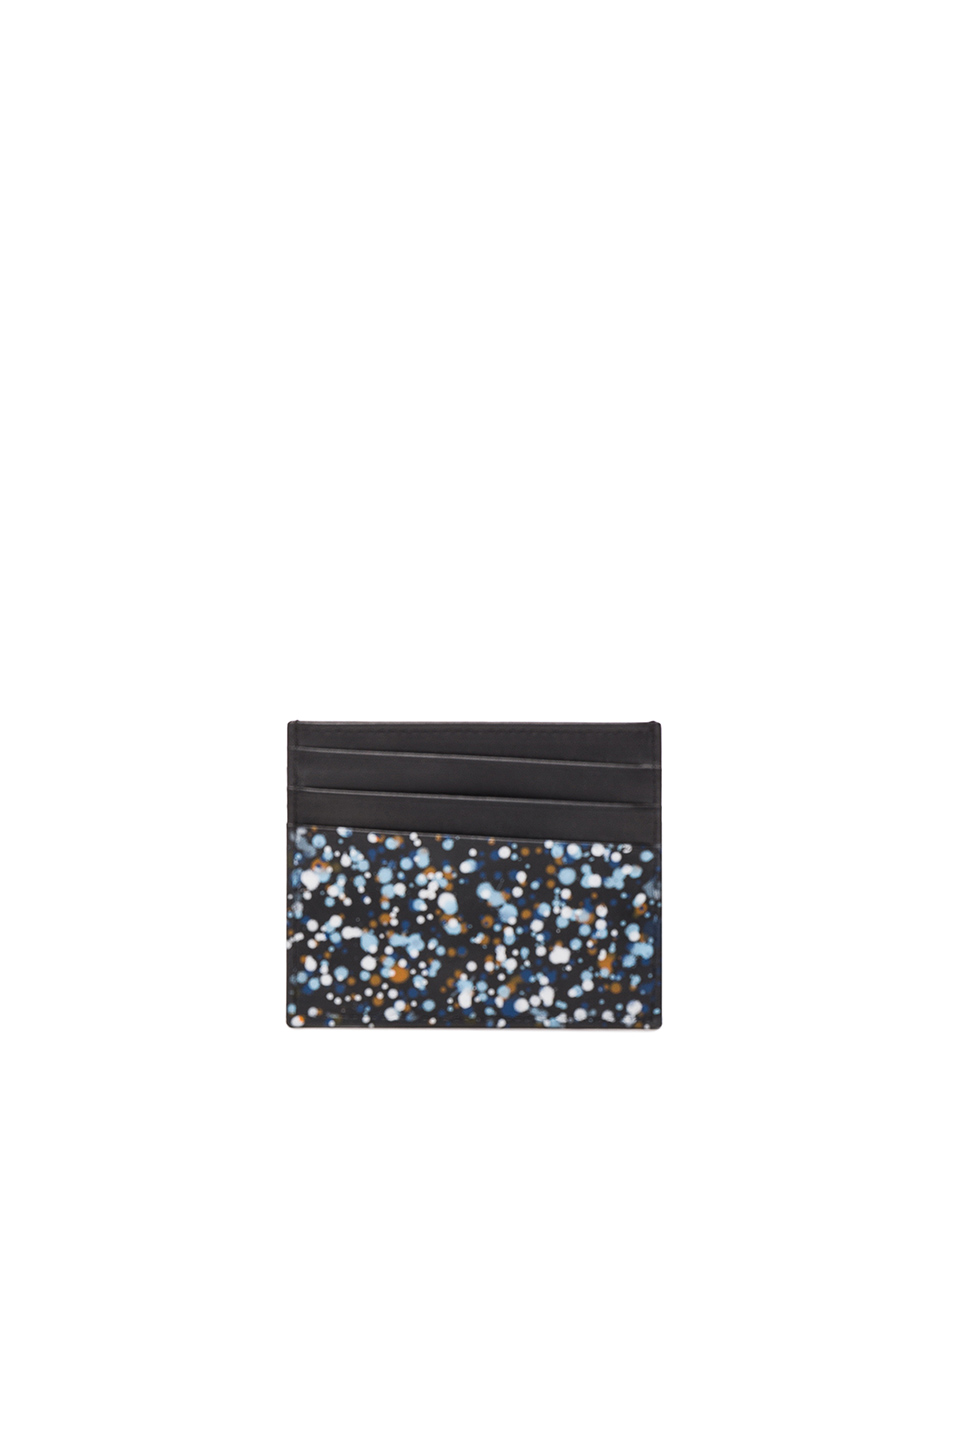 Photo of Maison Margiela Pollock Effect Cardholder in Black - shop Maison Margiela menswear